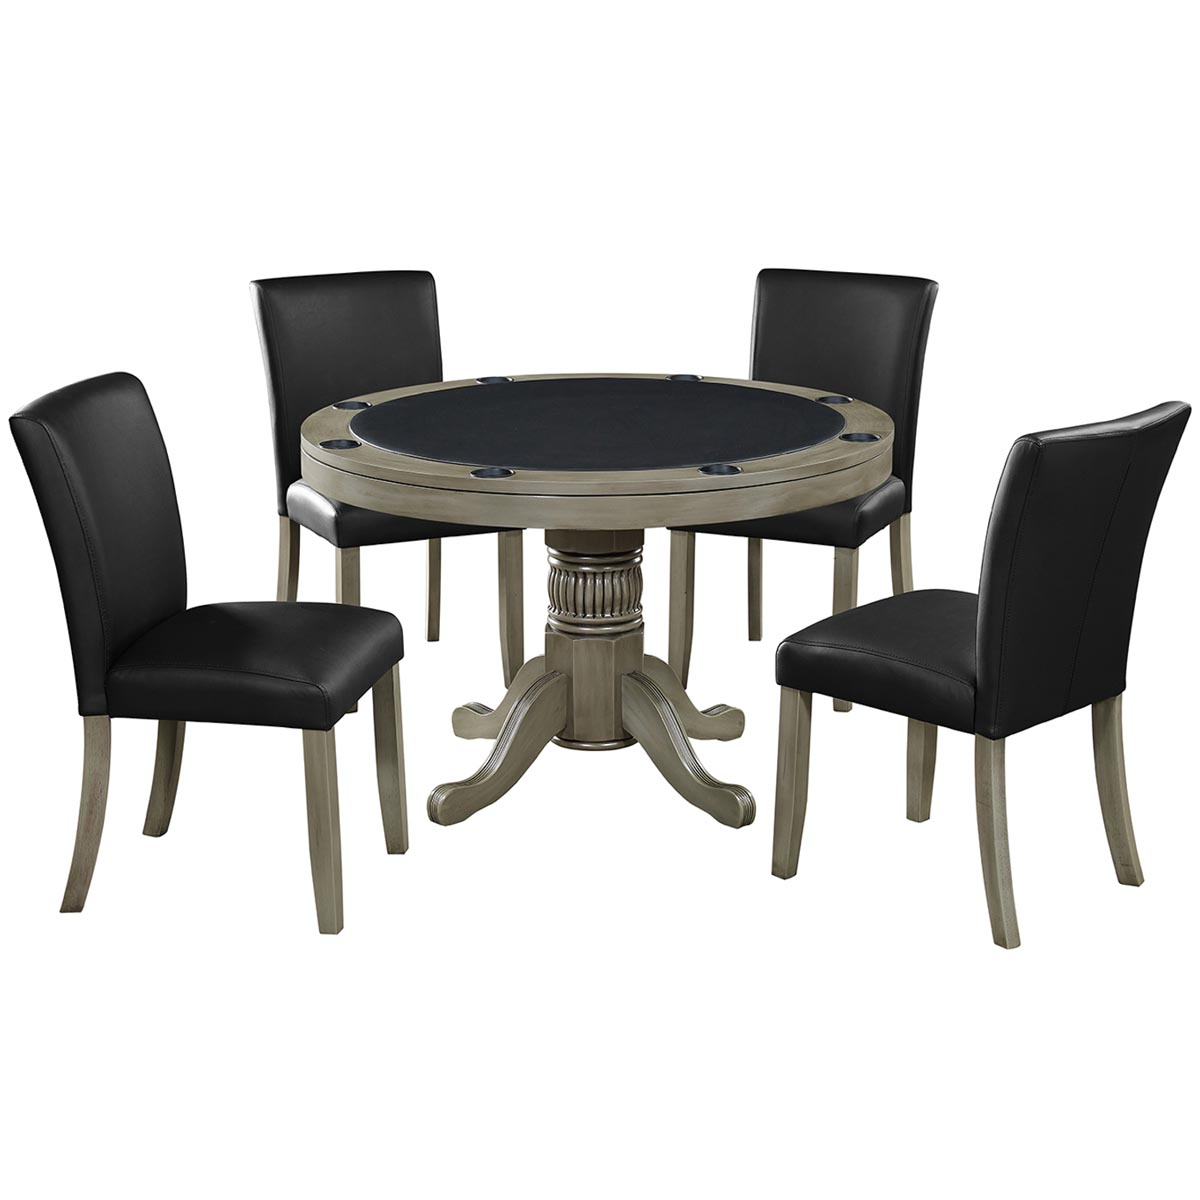 Slate Finish with Optional Dining Chairs